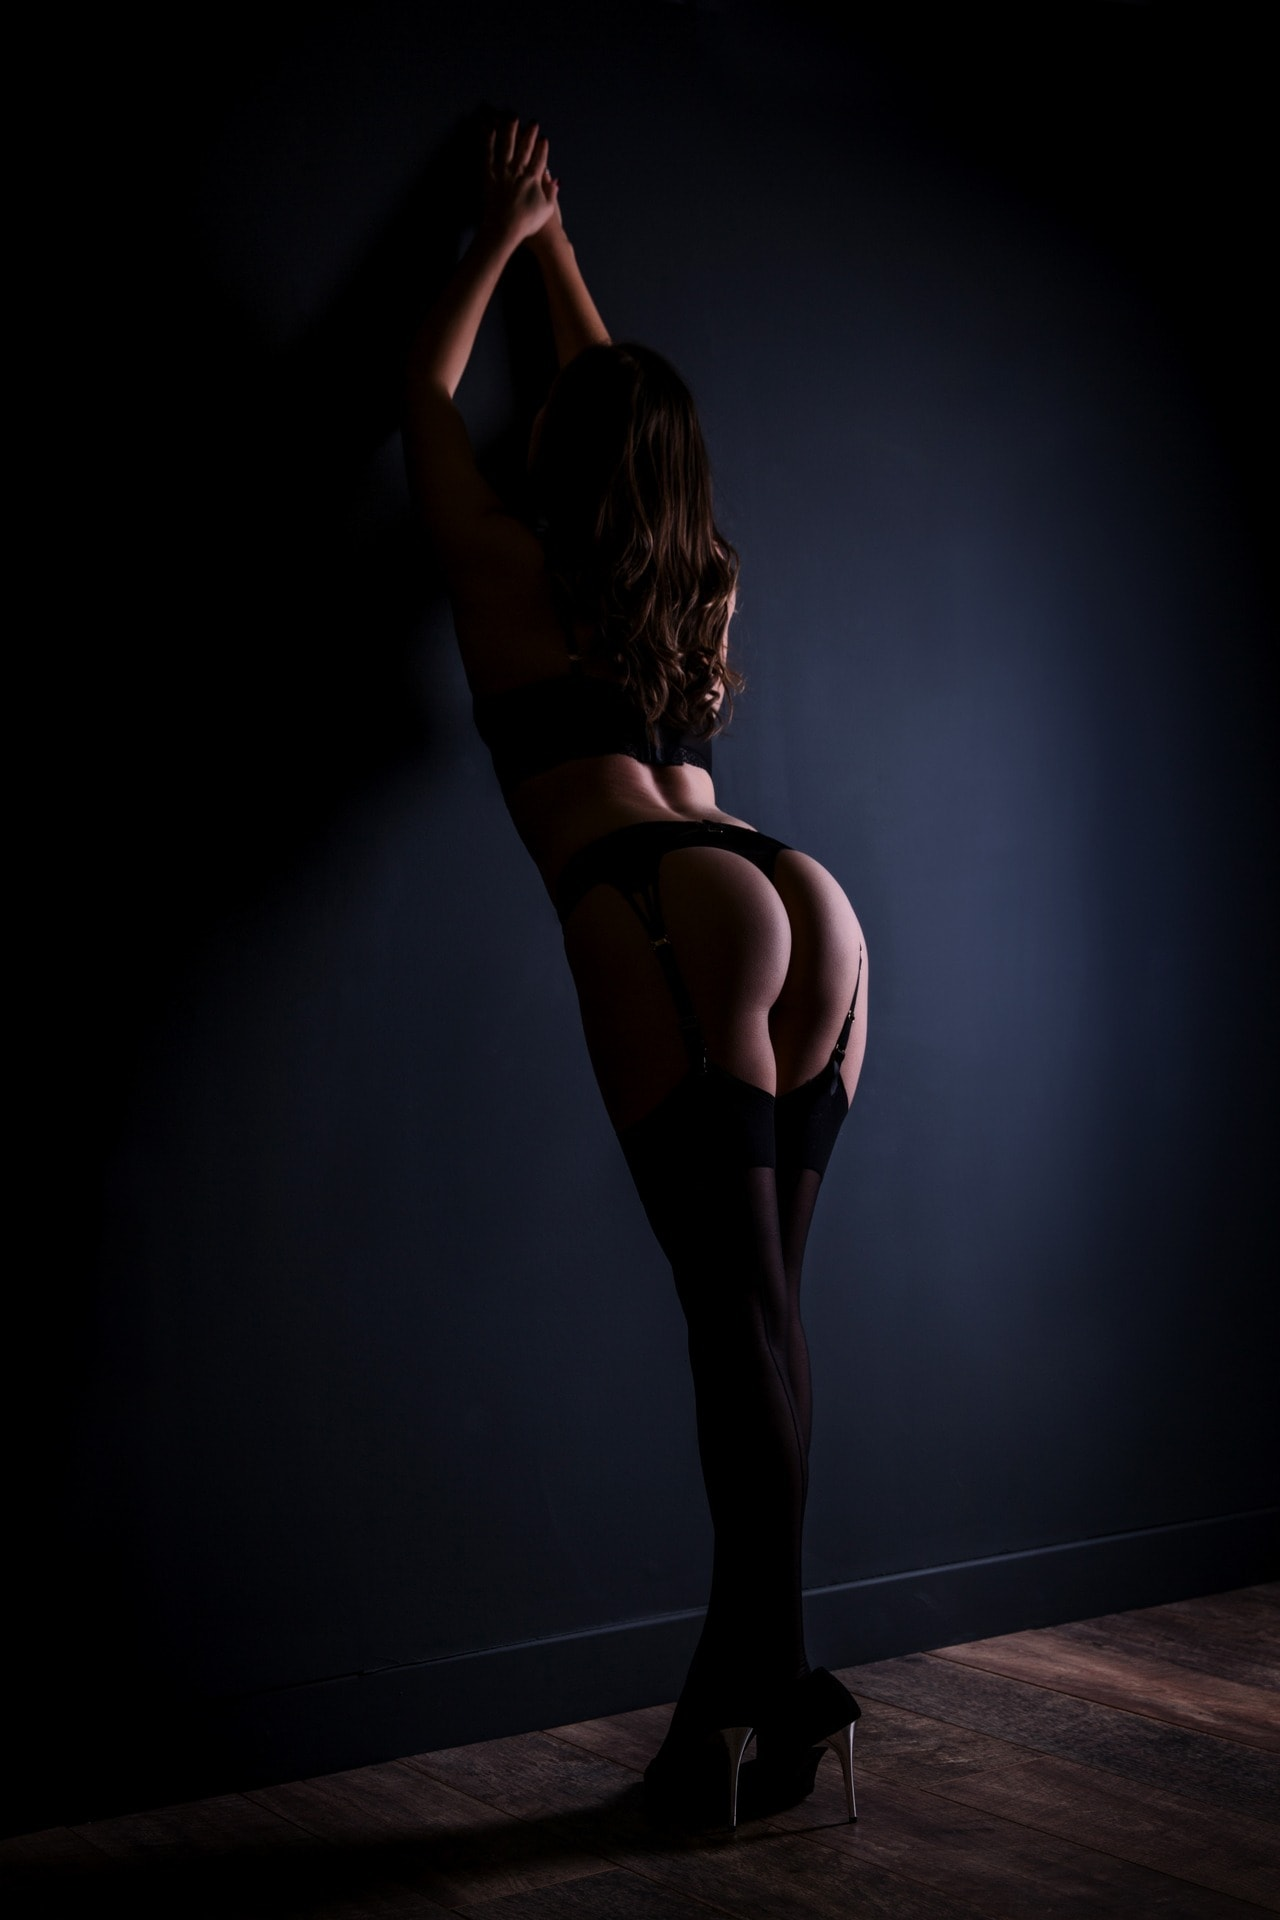 best-boudoir-photography-dark-wall-suspenders